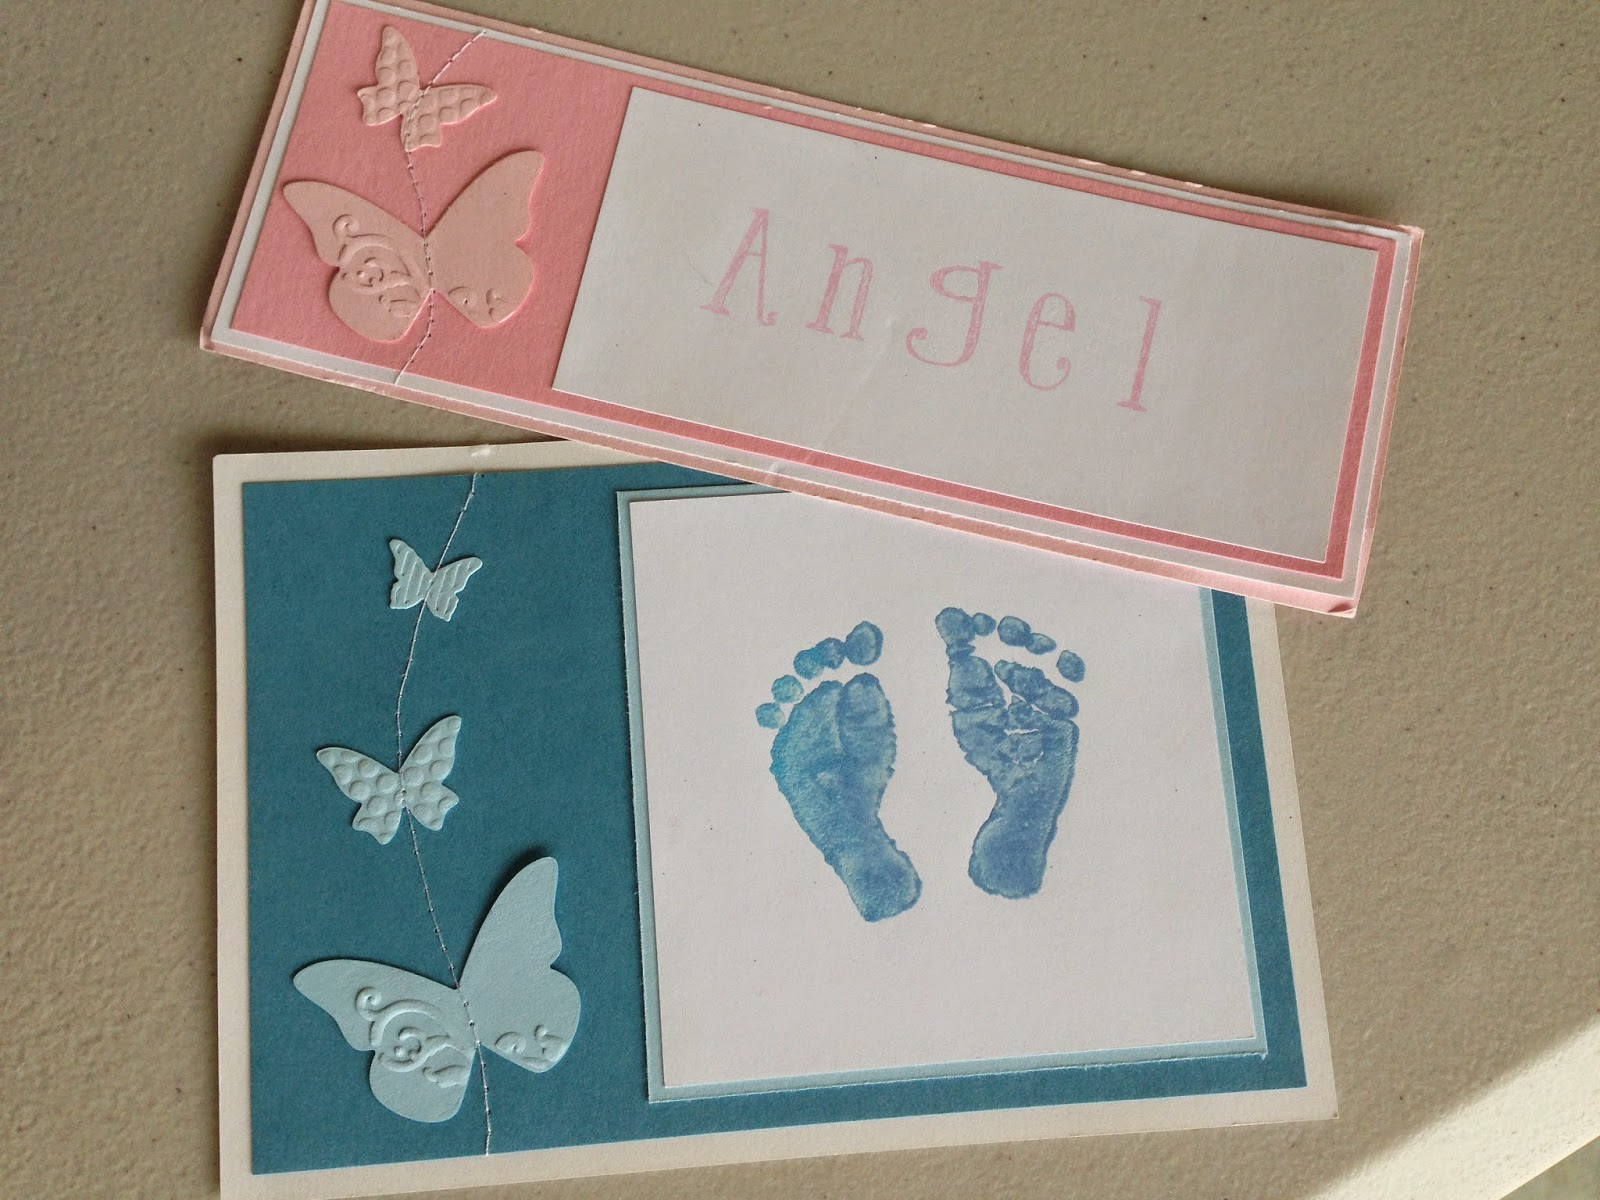 Footprints cards made for the Mater Mothers